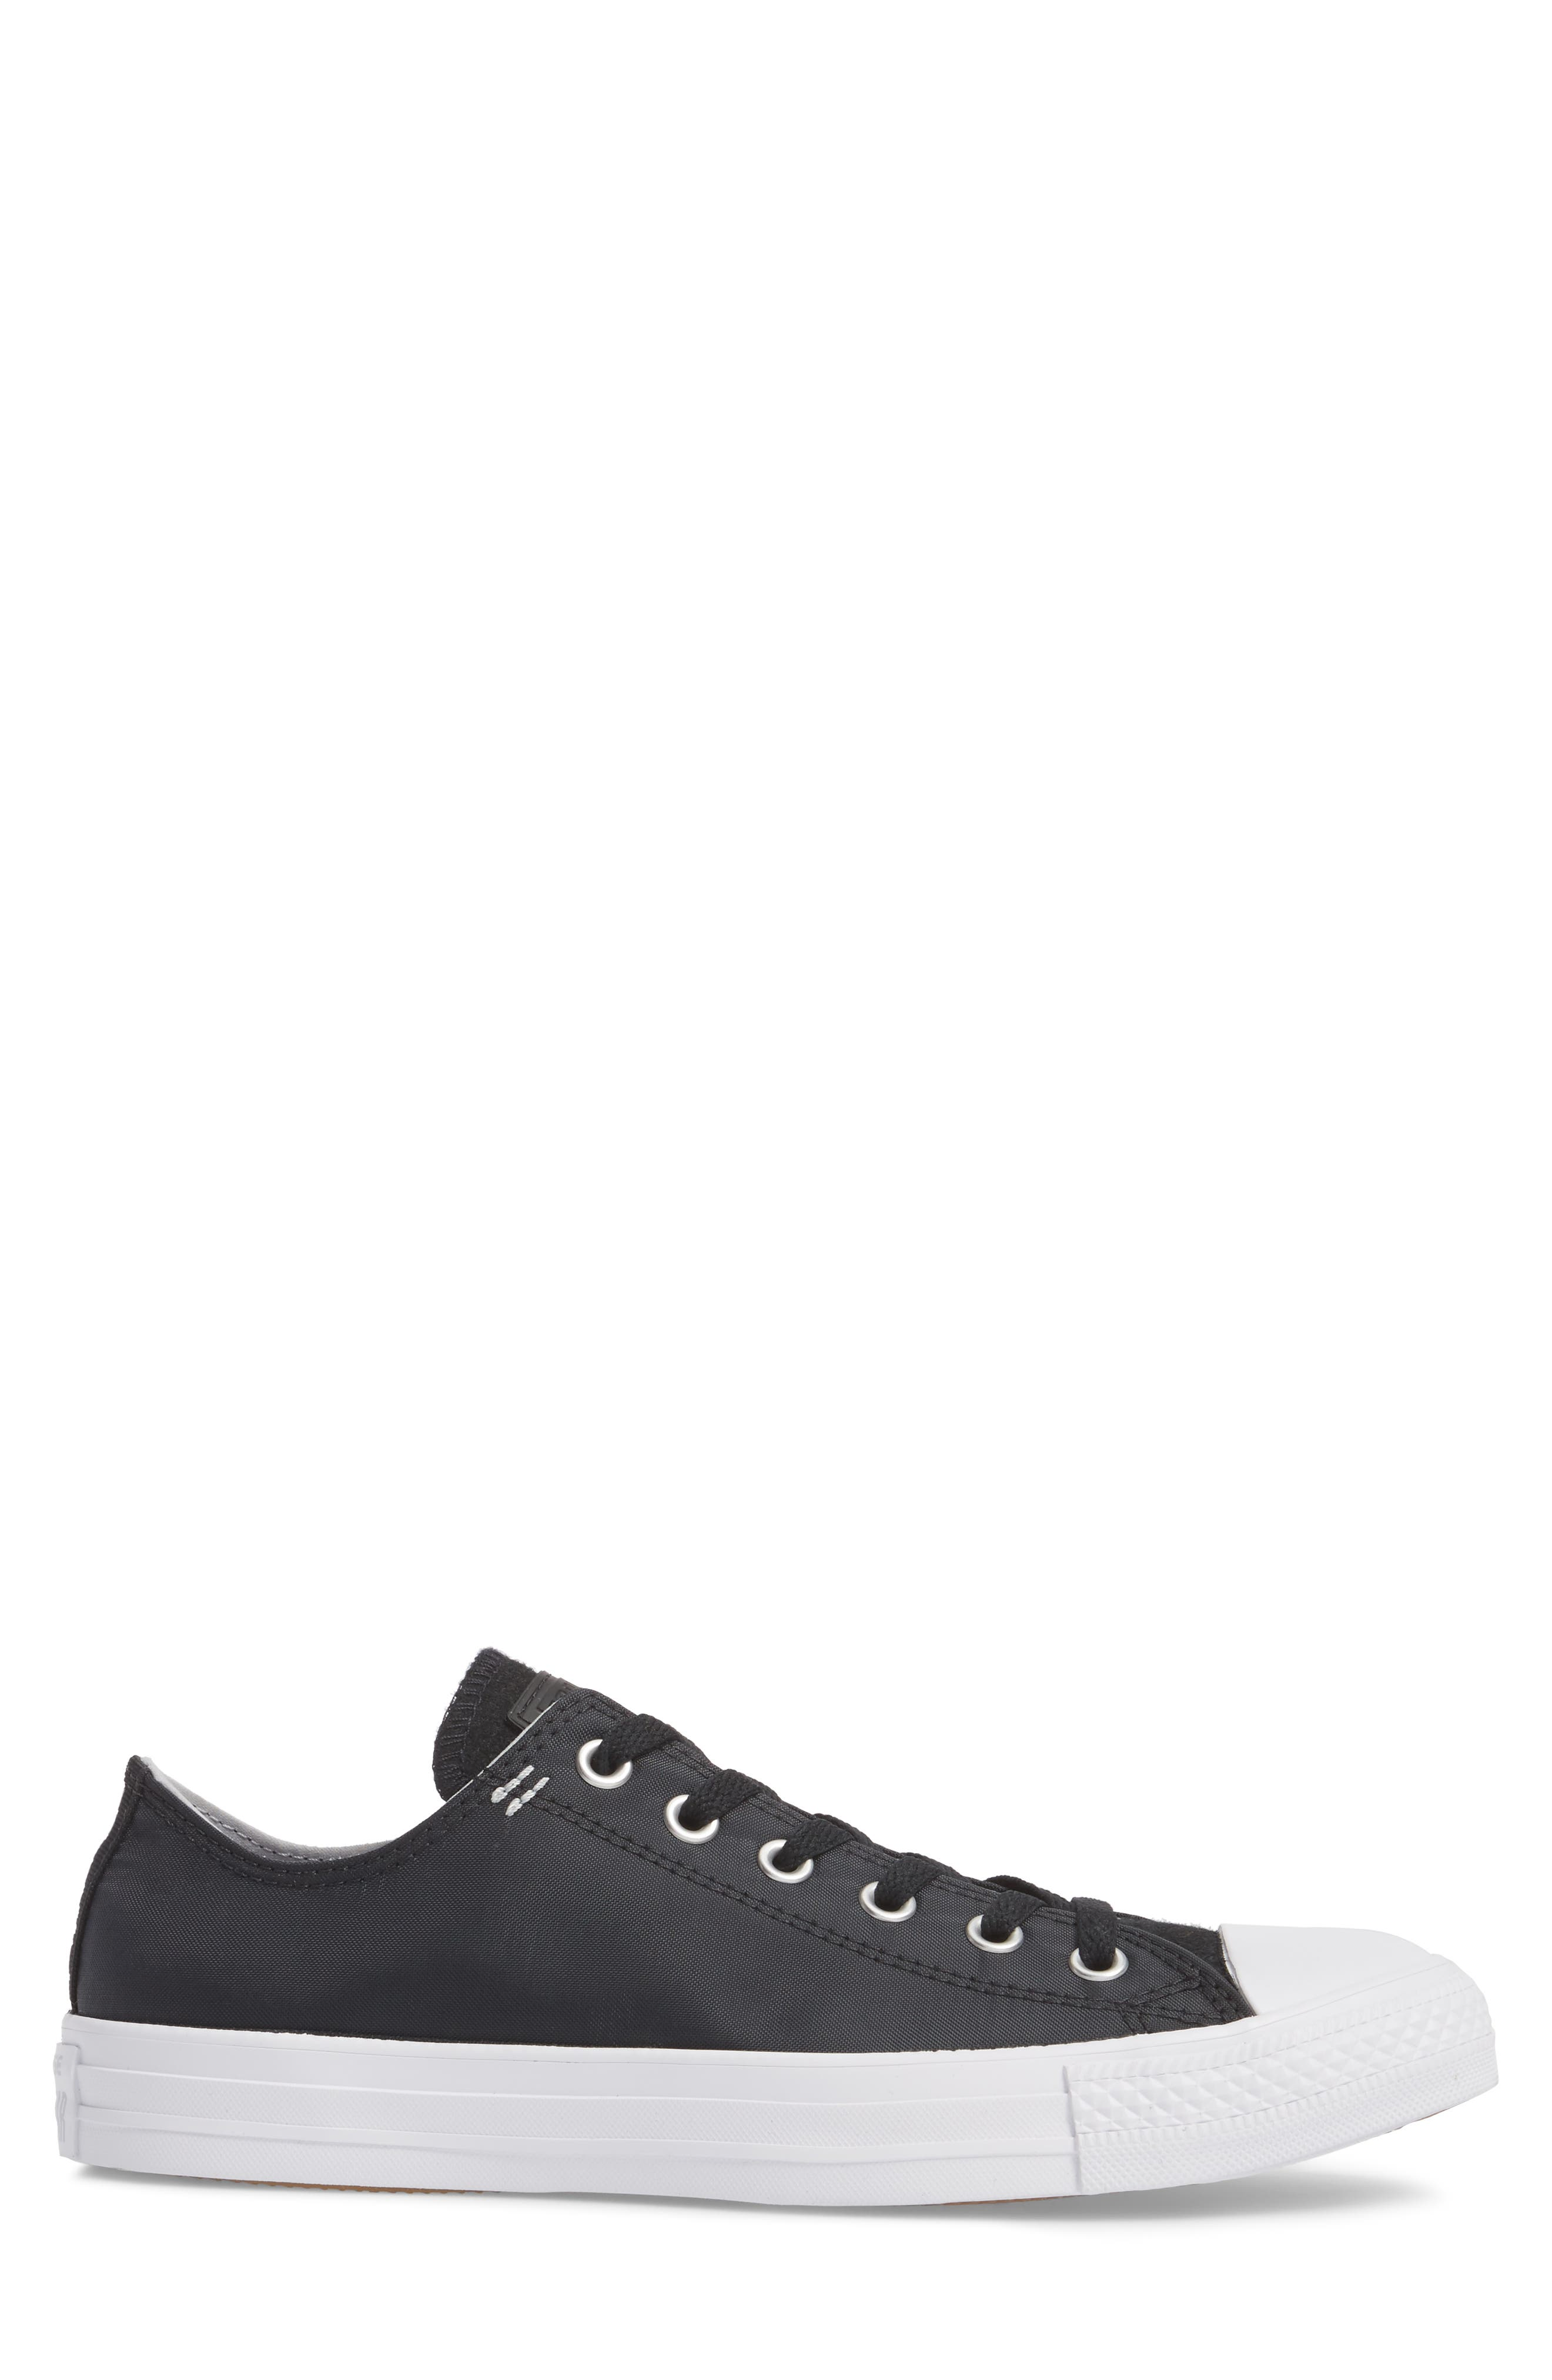 All Star<sup>®</sup> OX Low Top Sneaker,                             Alternate thumbnail 3, color,                             001